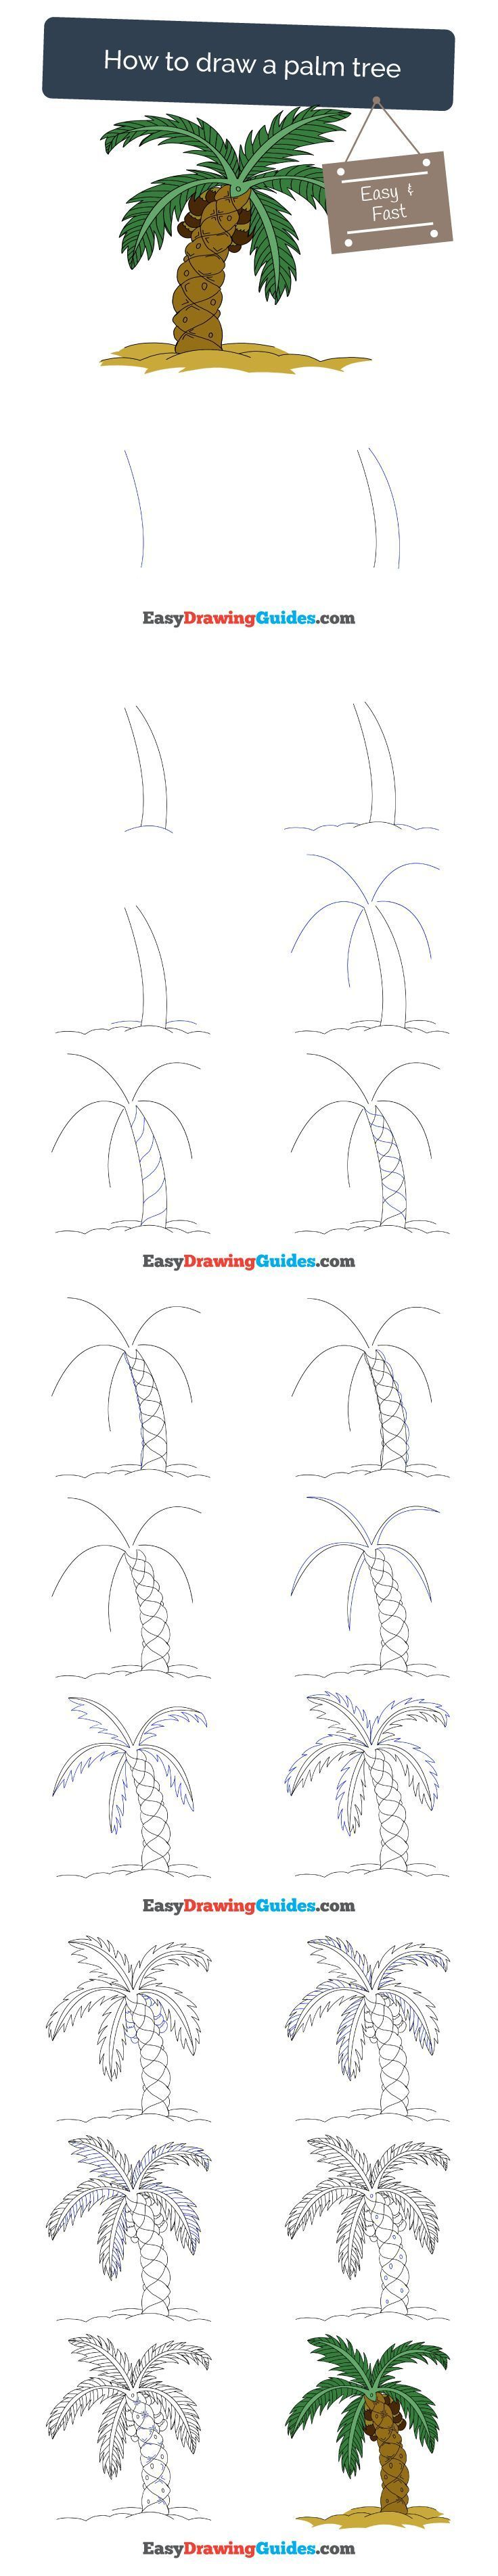 736x3810 How To Draw A Palm Tree Palm, Drawings And Tutorials